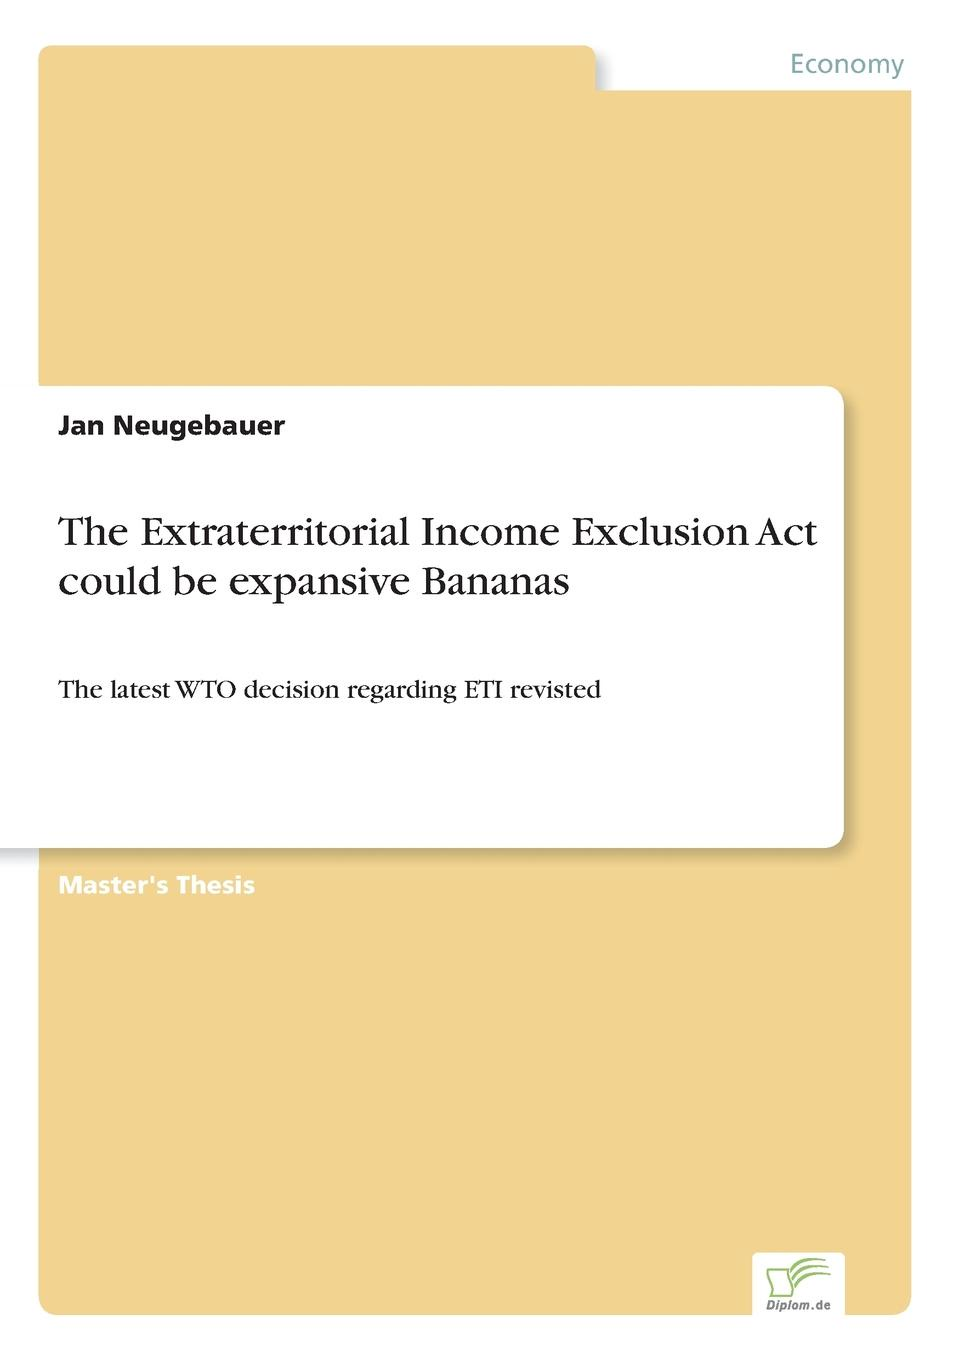 Jan Neugebauer The Extraterritorial Income Exclusion Act could be expansive Bananas world trade organization dispute settlement reports 2012 volume 9 pages 4583 to 5302